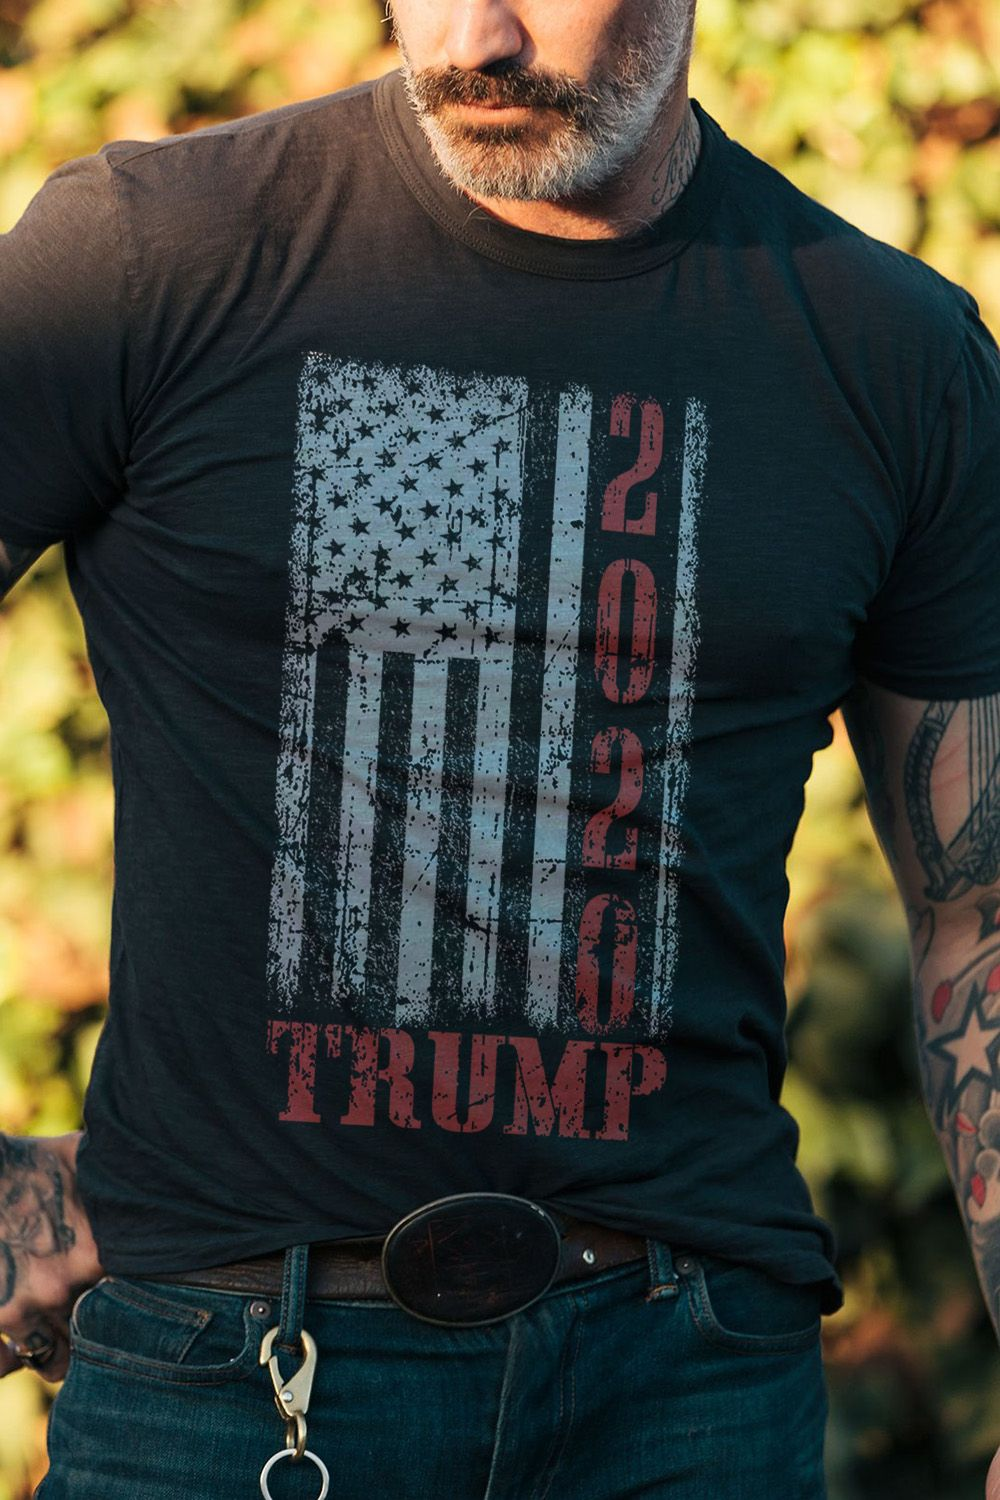 Birthday Gift Ideas For Men 2020 Vintage Design American Flag Trump 2020 T shirt. This is a great